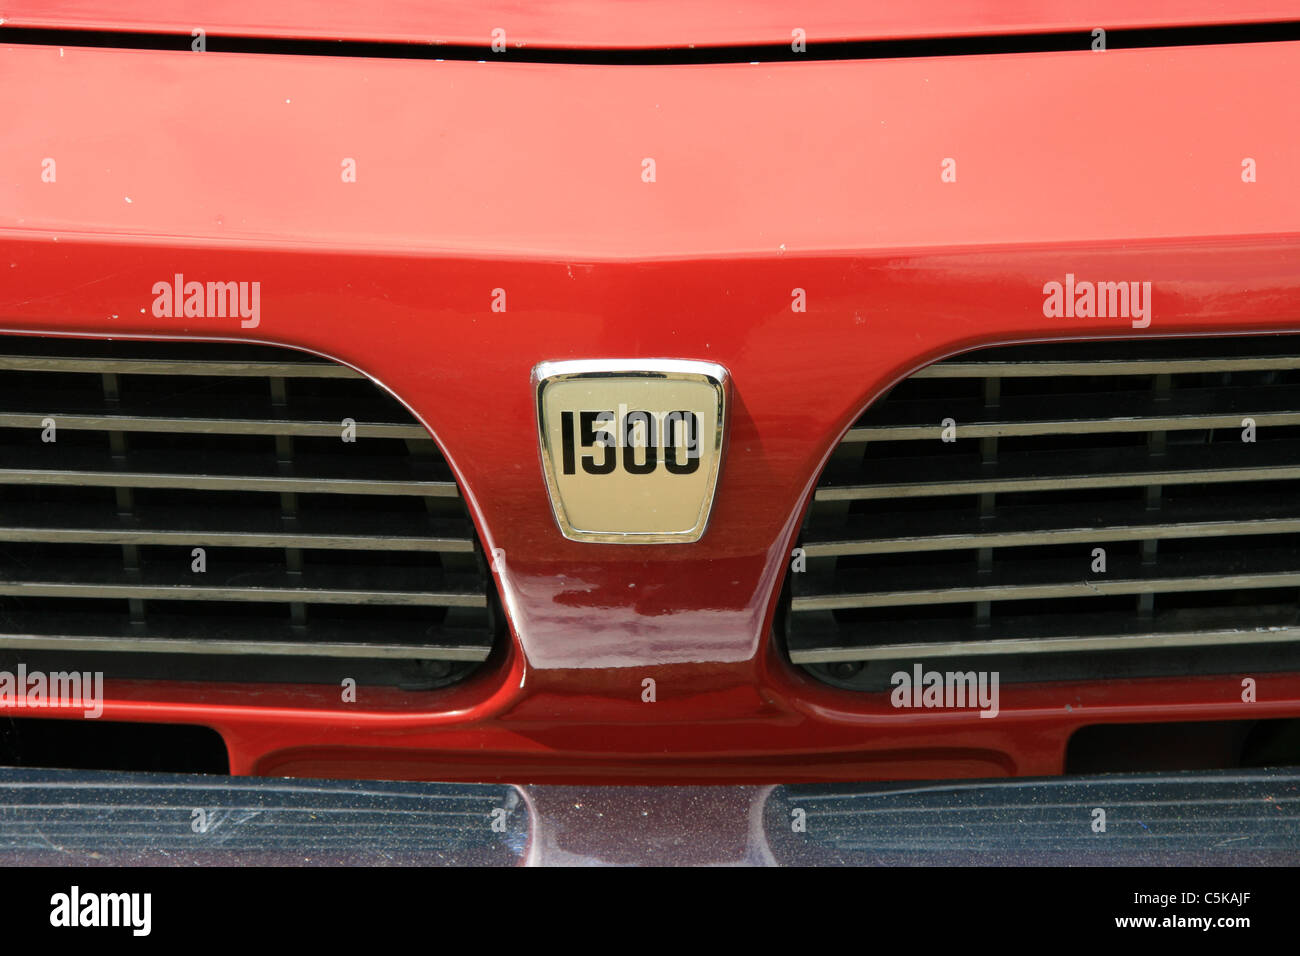 A close-up of the front of a Triumph 1500 car. - Stock Image